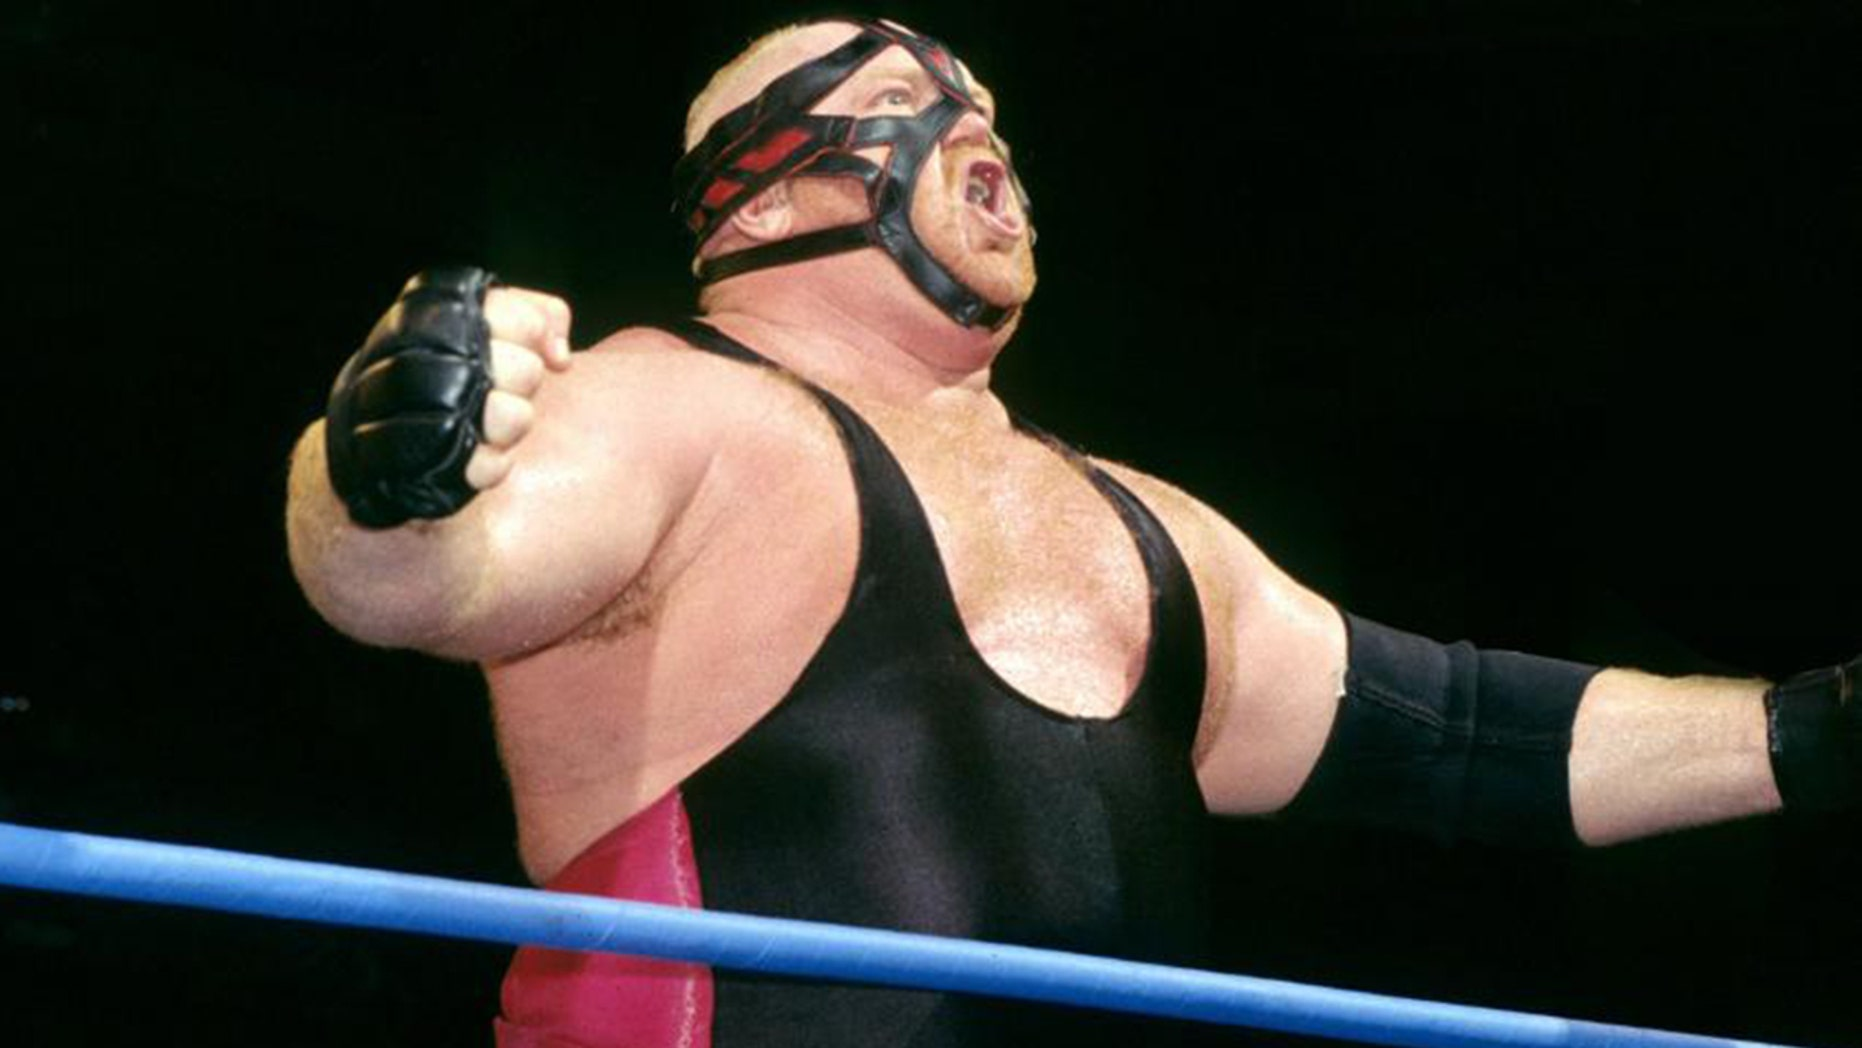 WWE star Vader died at age 63 on Monday.